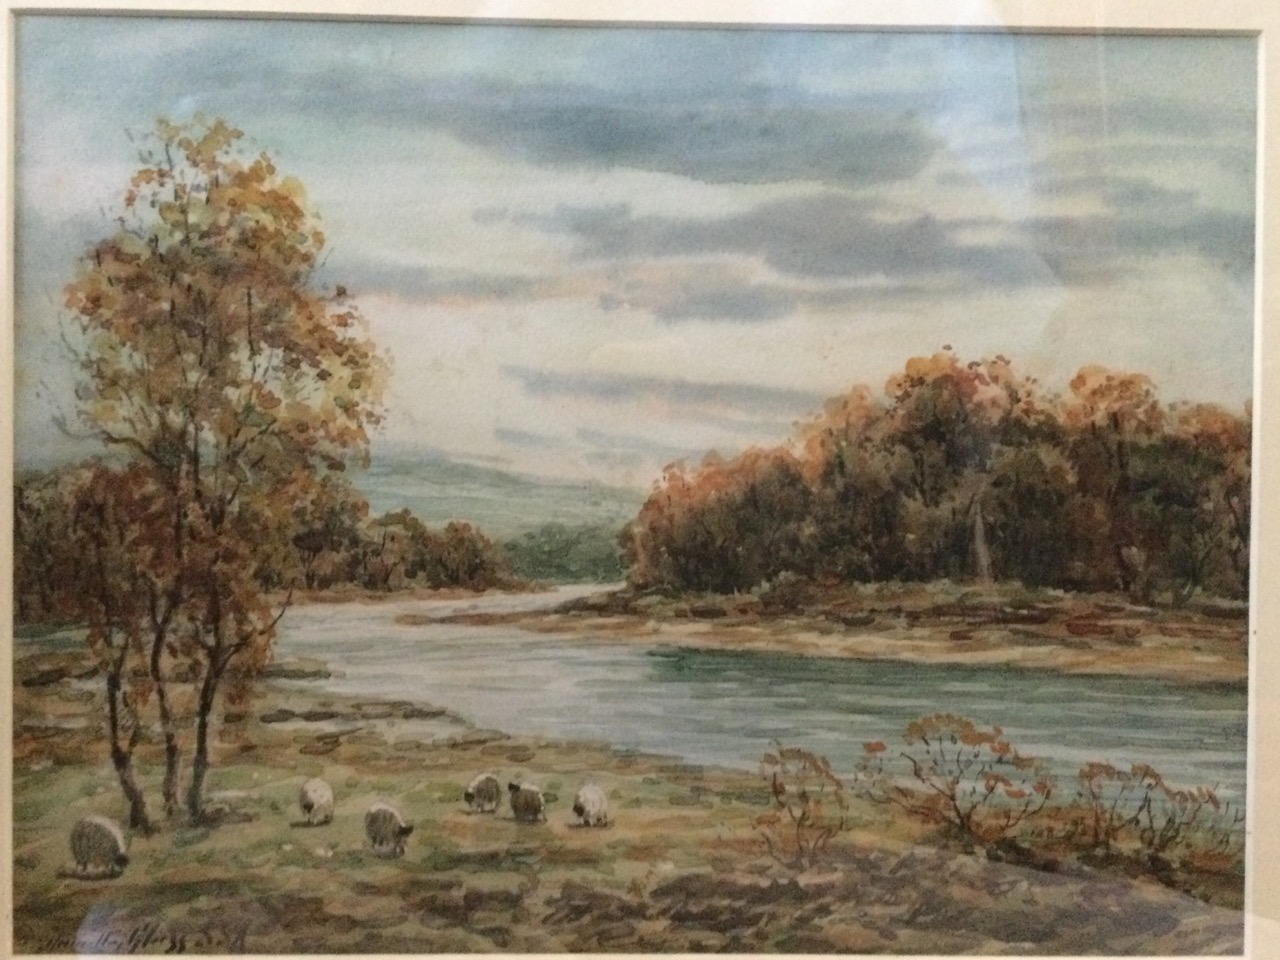 Hamilton Glass, watercolour, river landscape with sheep in foreground, signed, mounted & gilt